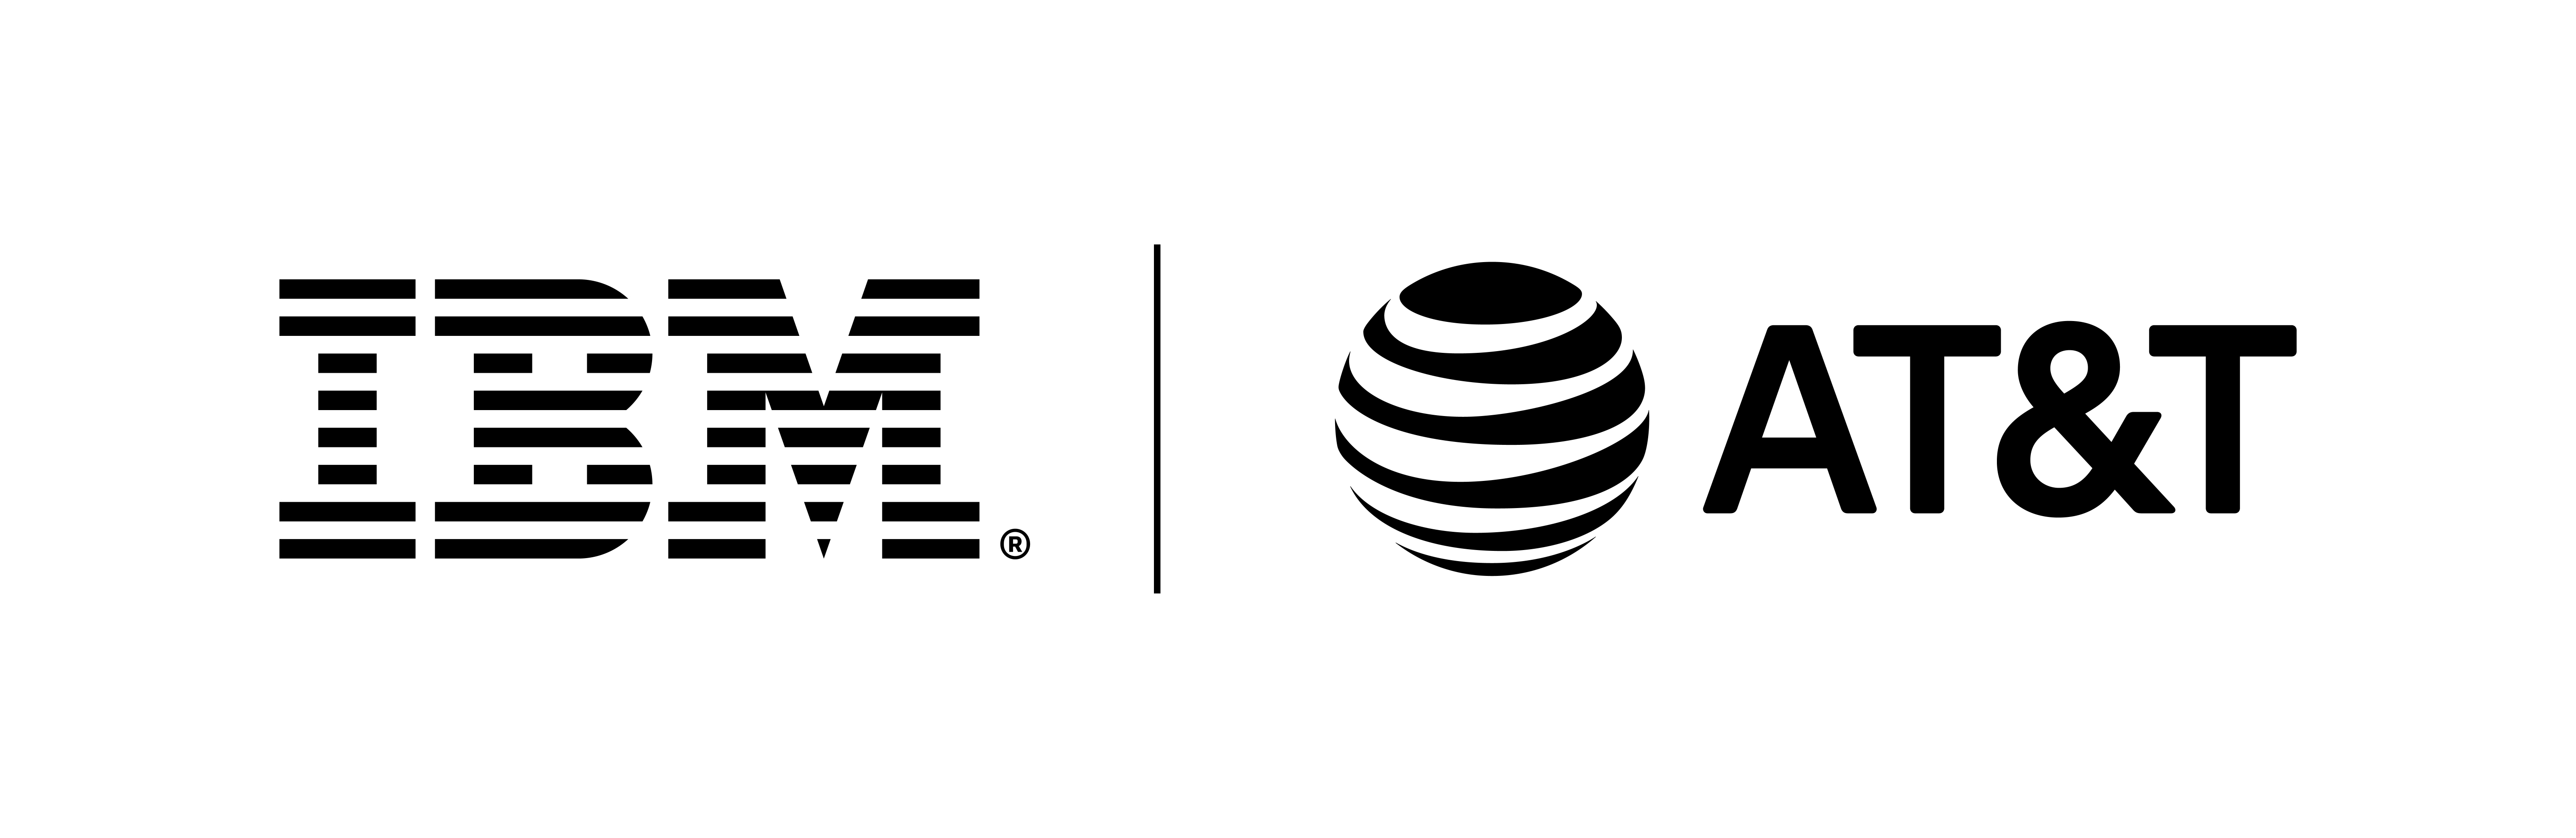 IBM And AT&T Announce Multi-Year Strategic Alliance - Jul 16